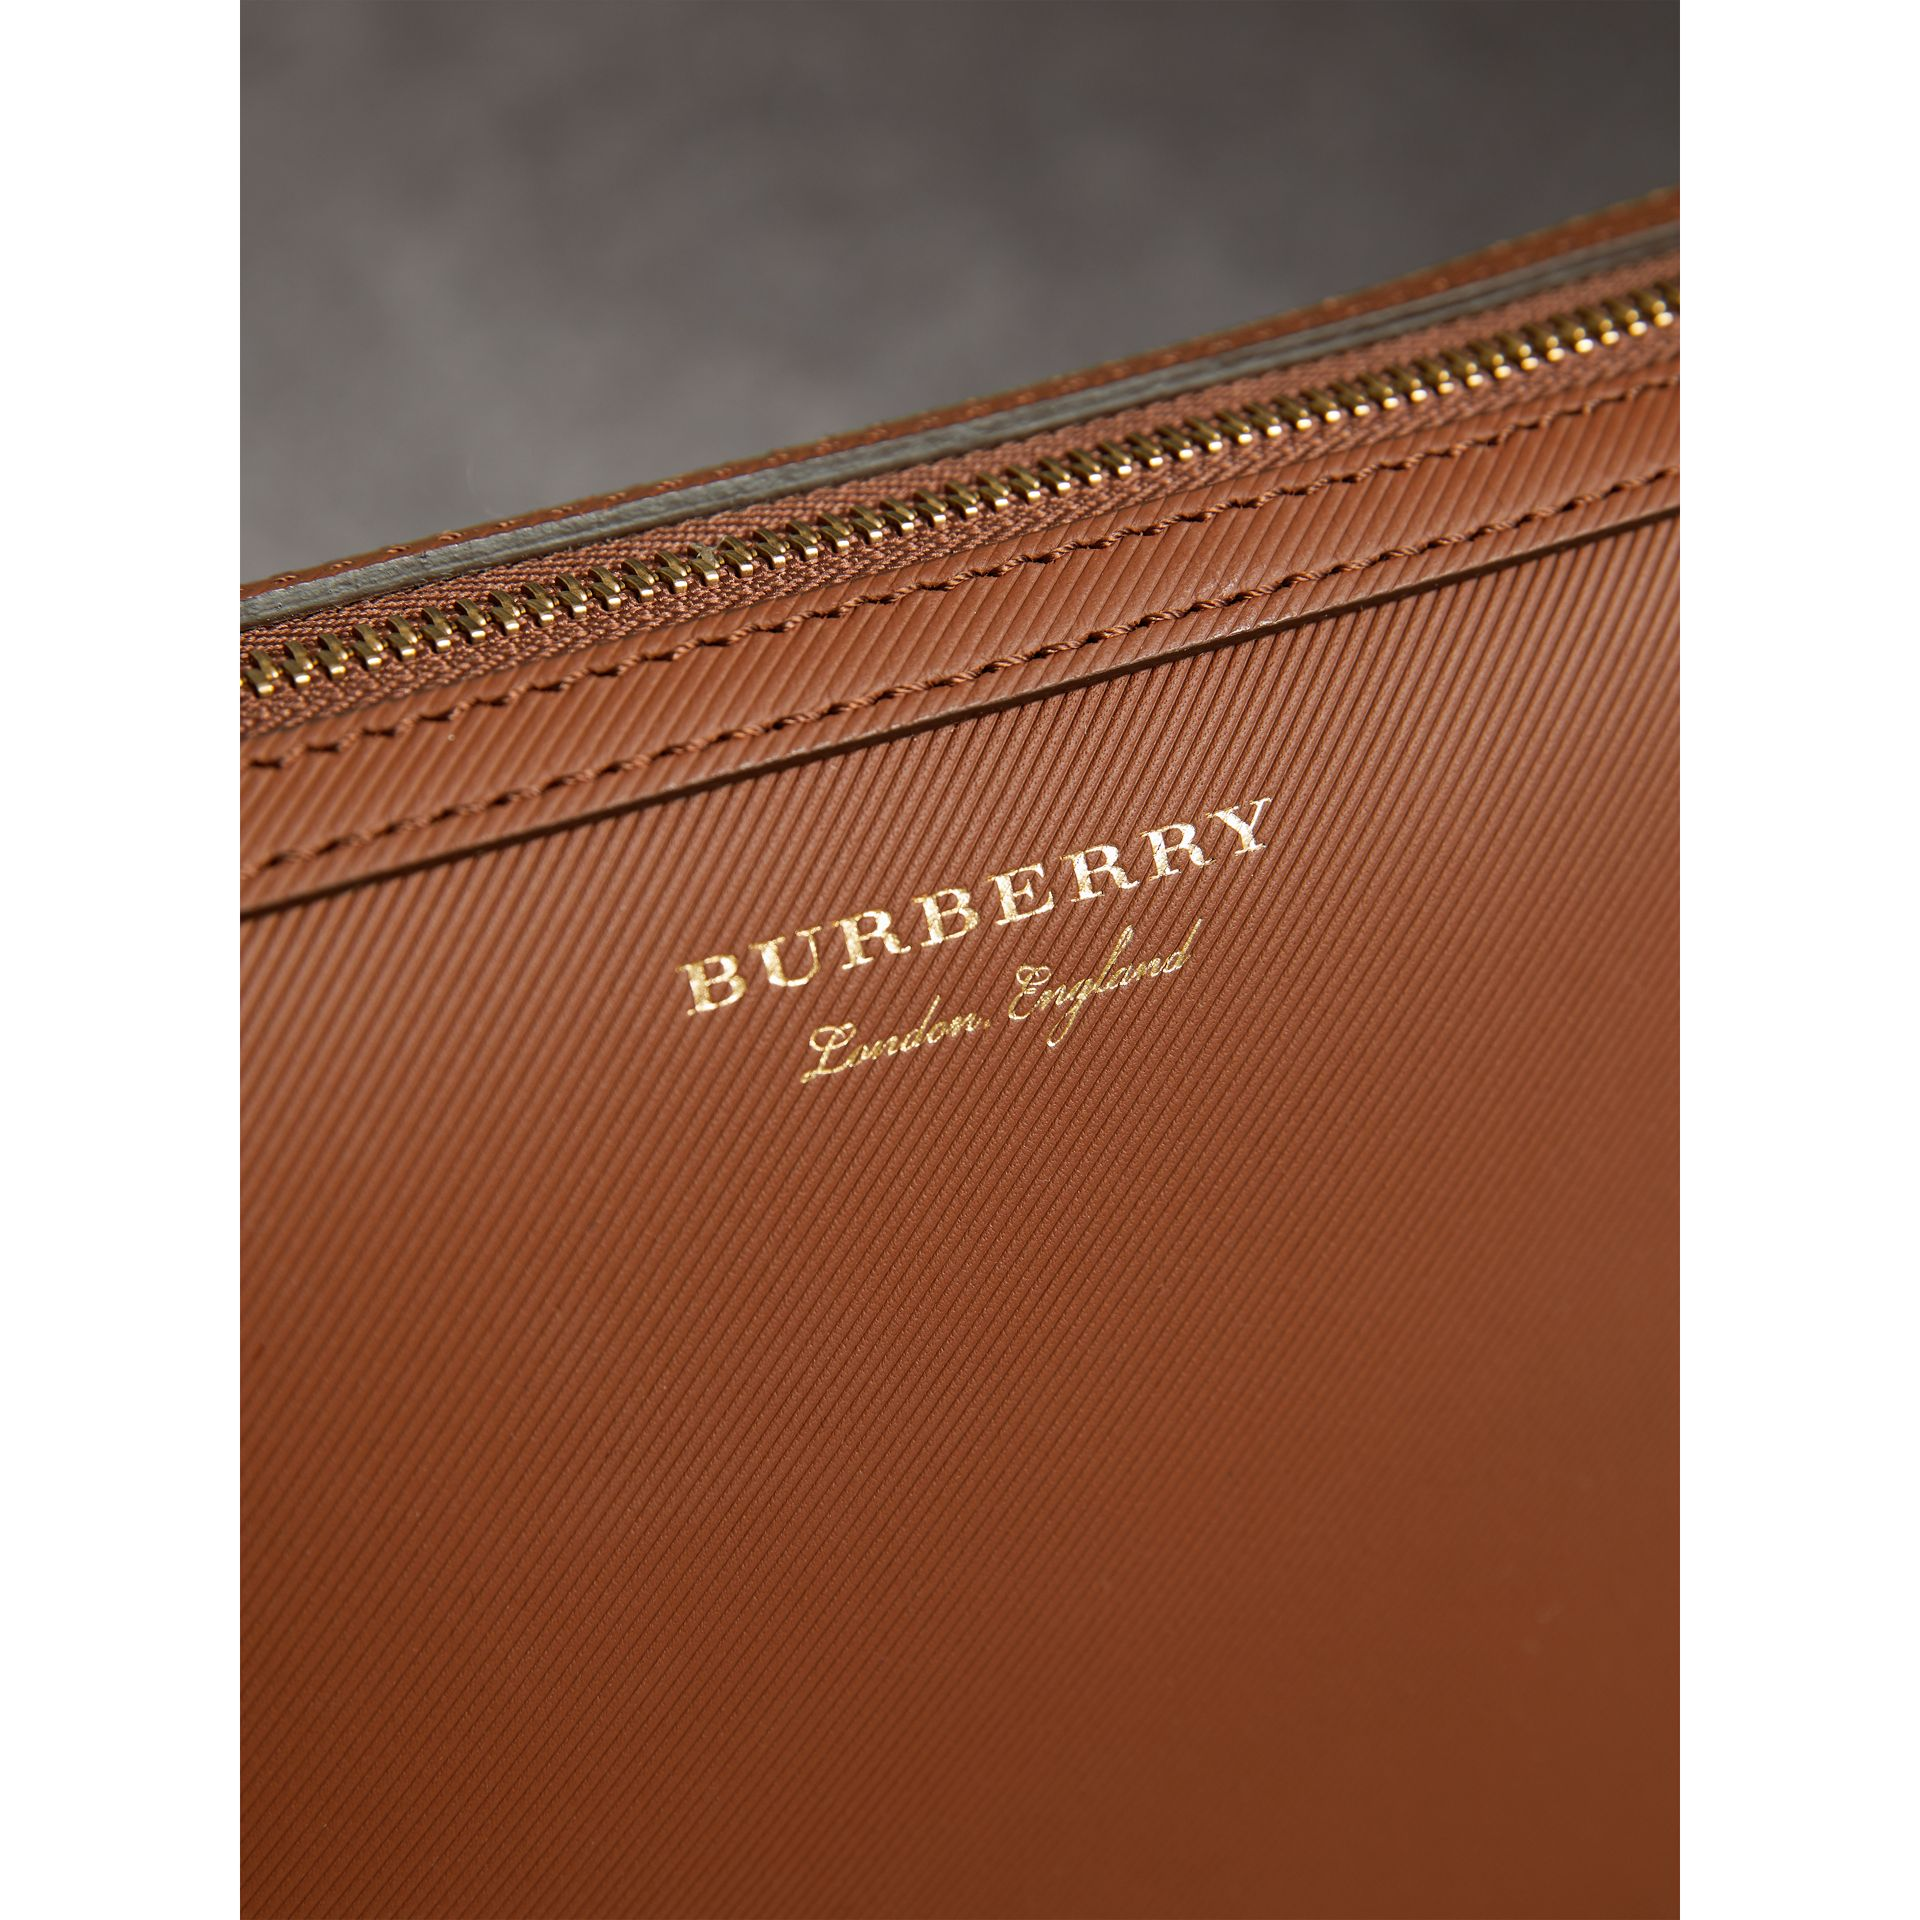 Trench Leather Pouch in Tan - Men | Burberry - gallery image 1